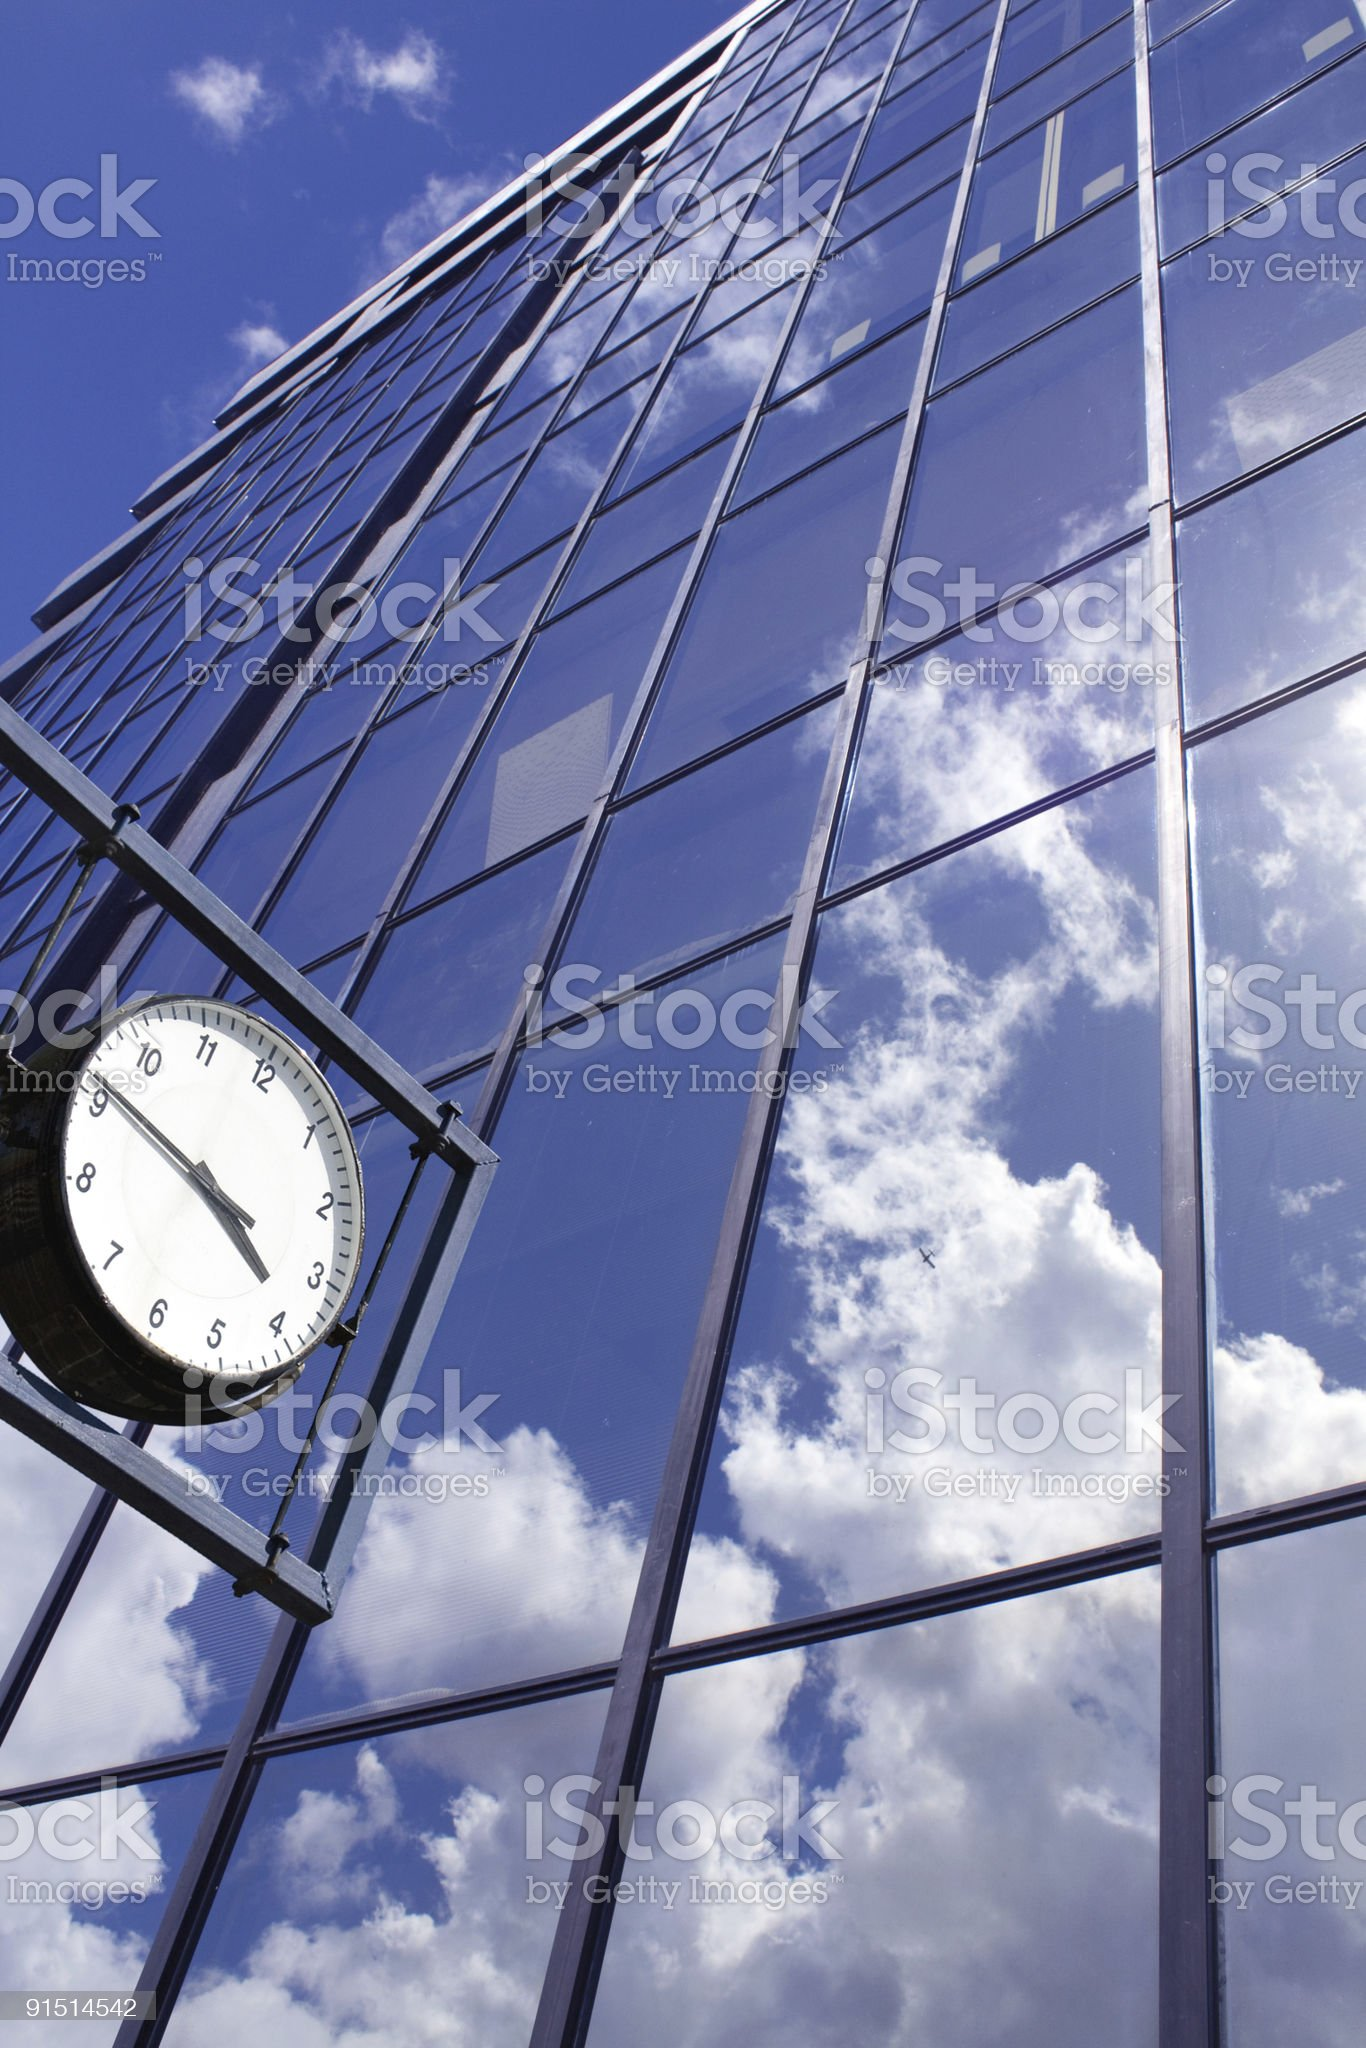 Clock on blue office building background royalty-free stock photo